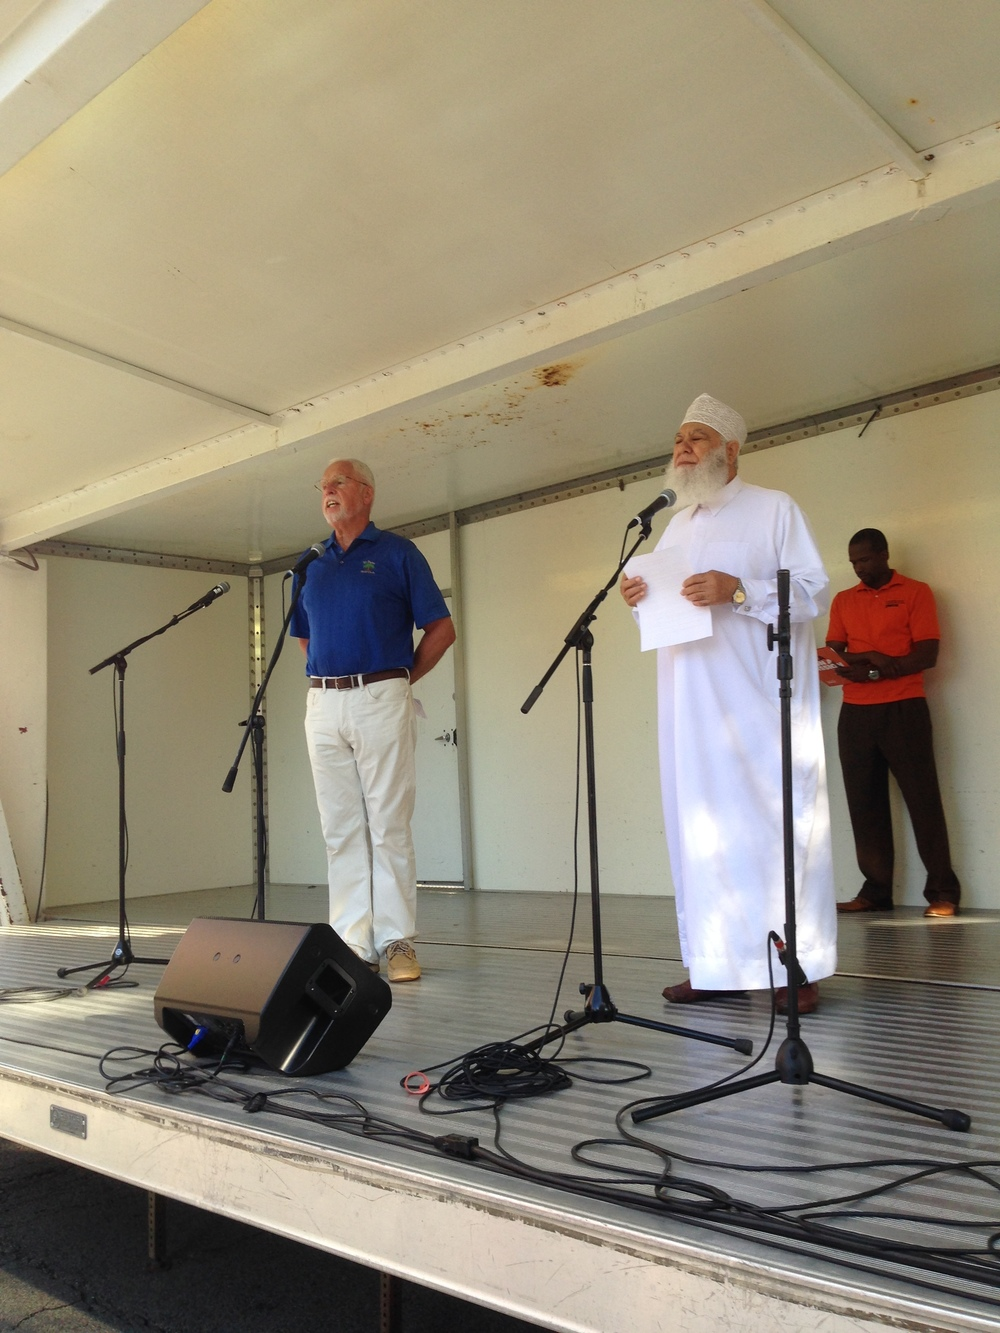 The Rev. John Libert and Imam Abu Emad were among Twin Cities spiritual leaders who dedicated Tuesday's NIOTBN 20th anniversary celebration.